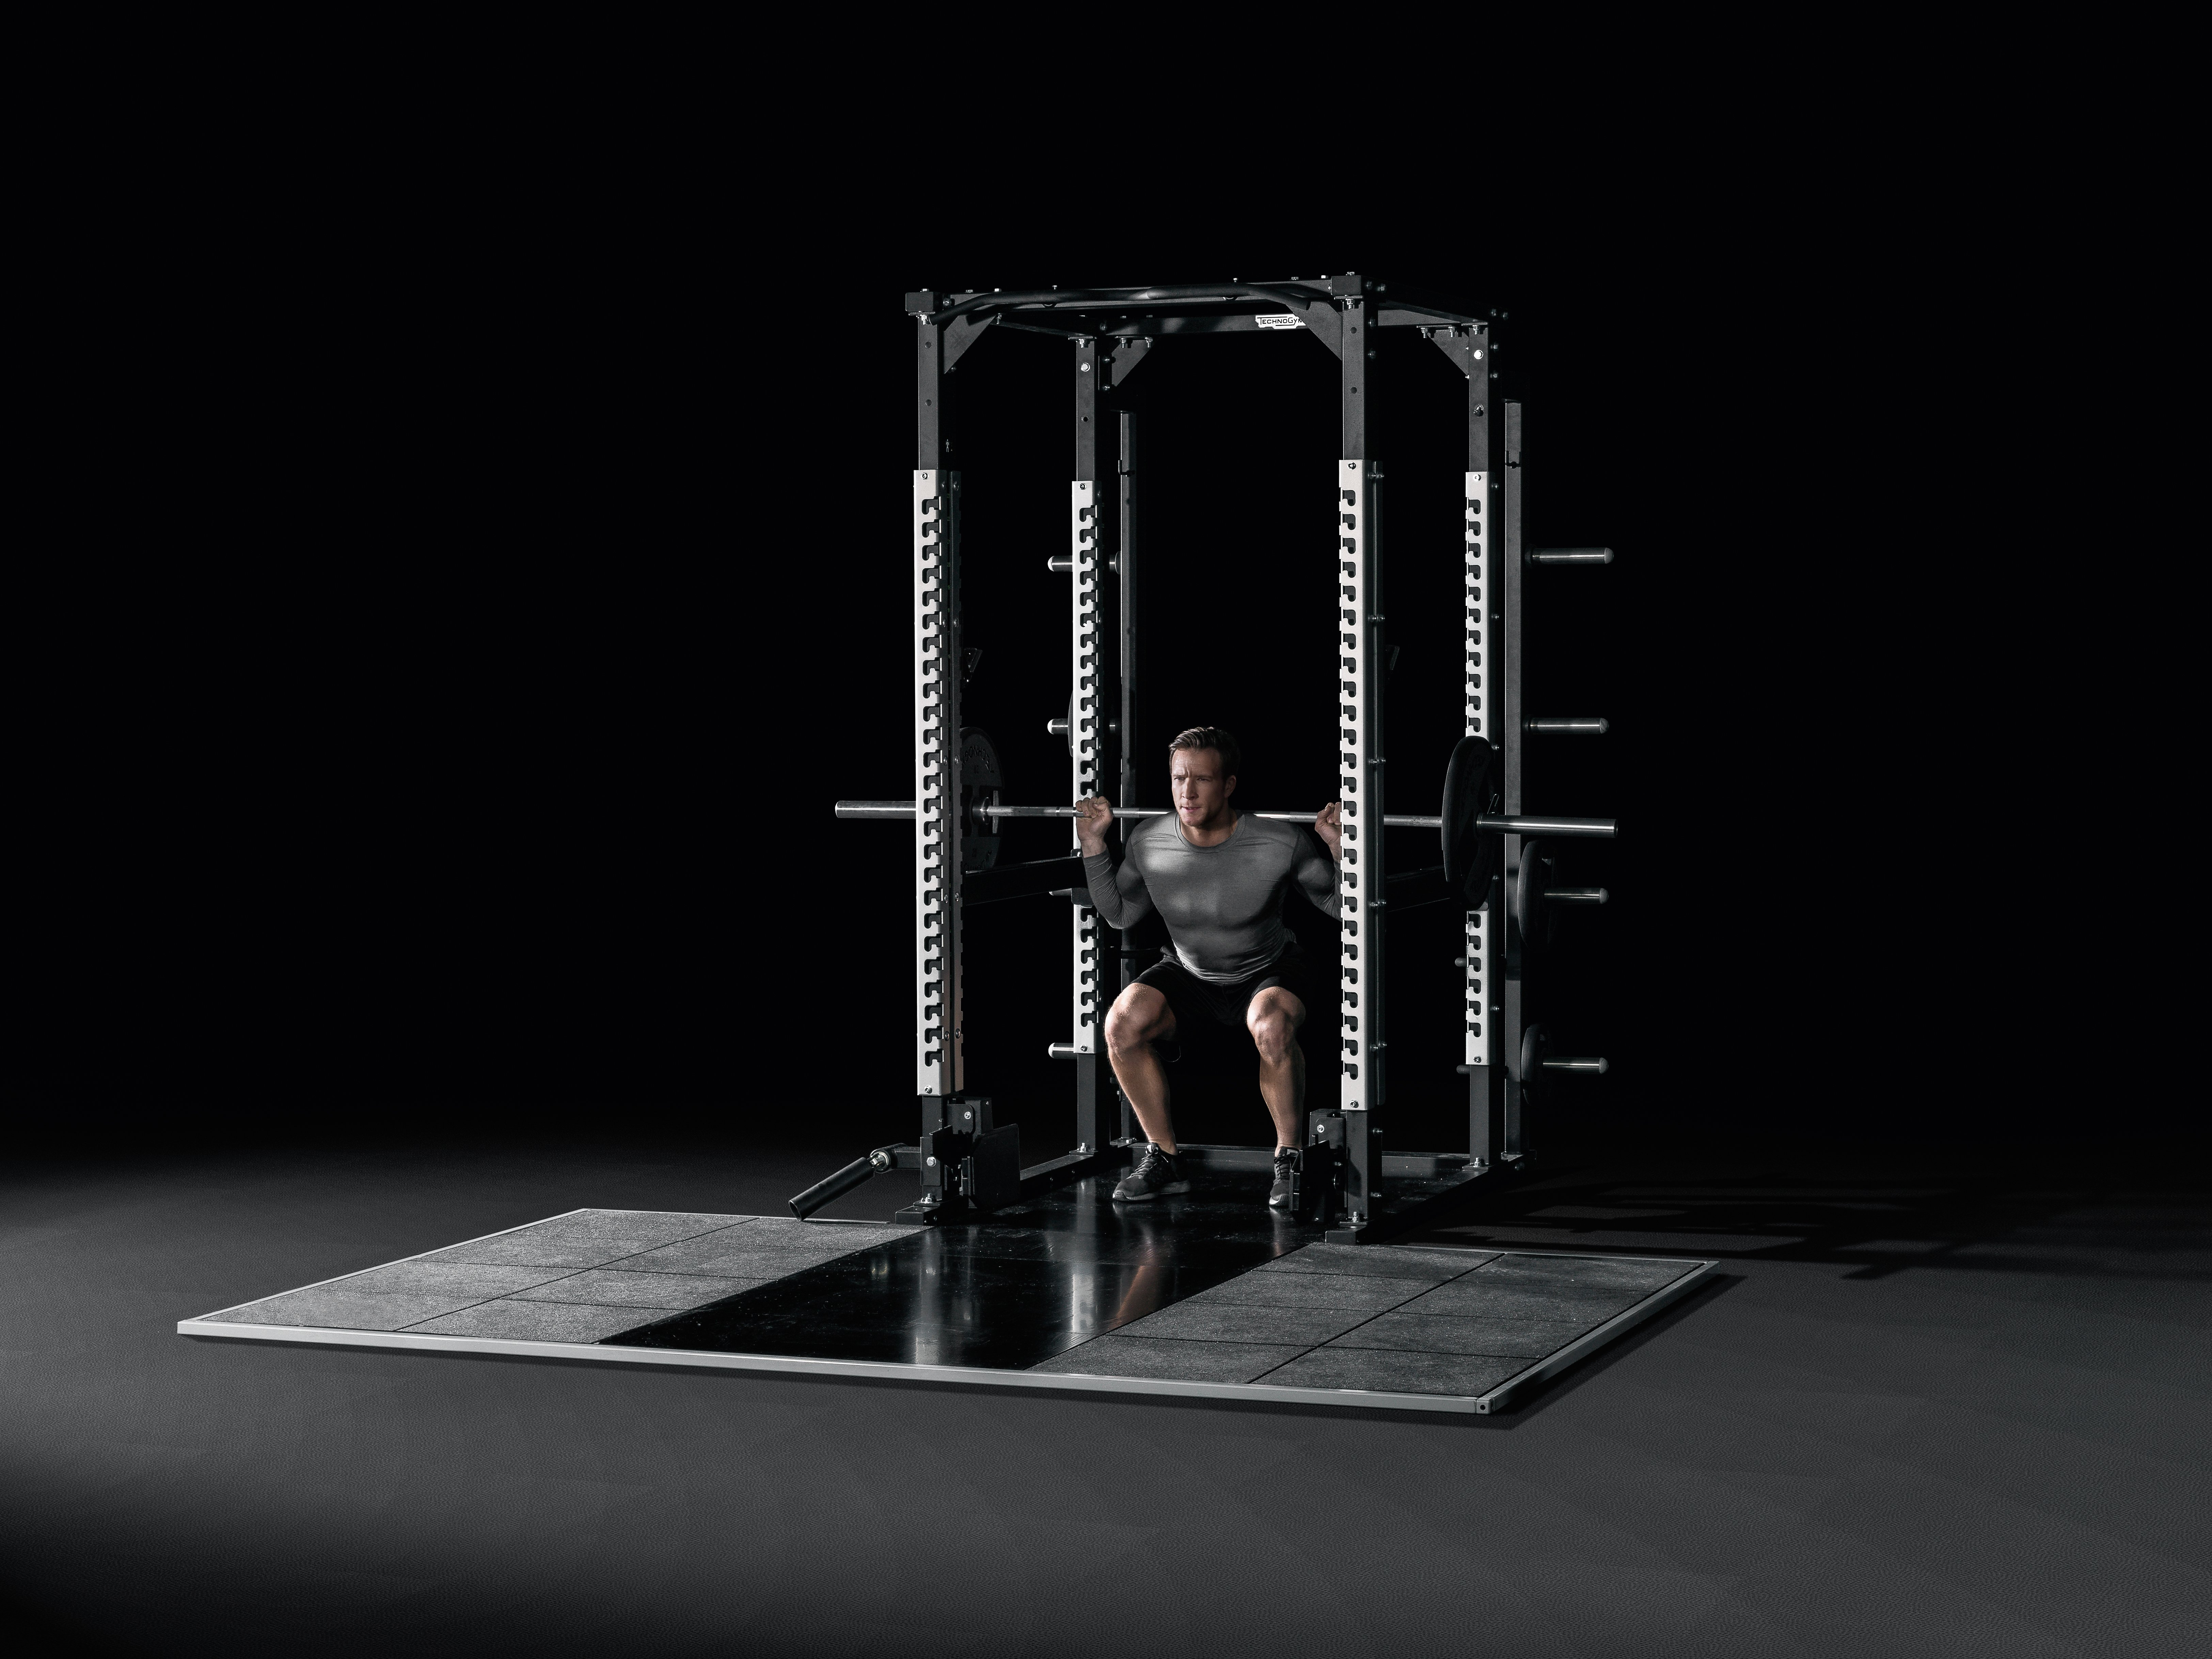 Technogym Announces Strategic Partnership with National Strength and Conditioning Association (NSCA)